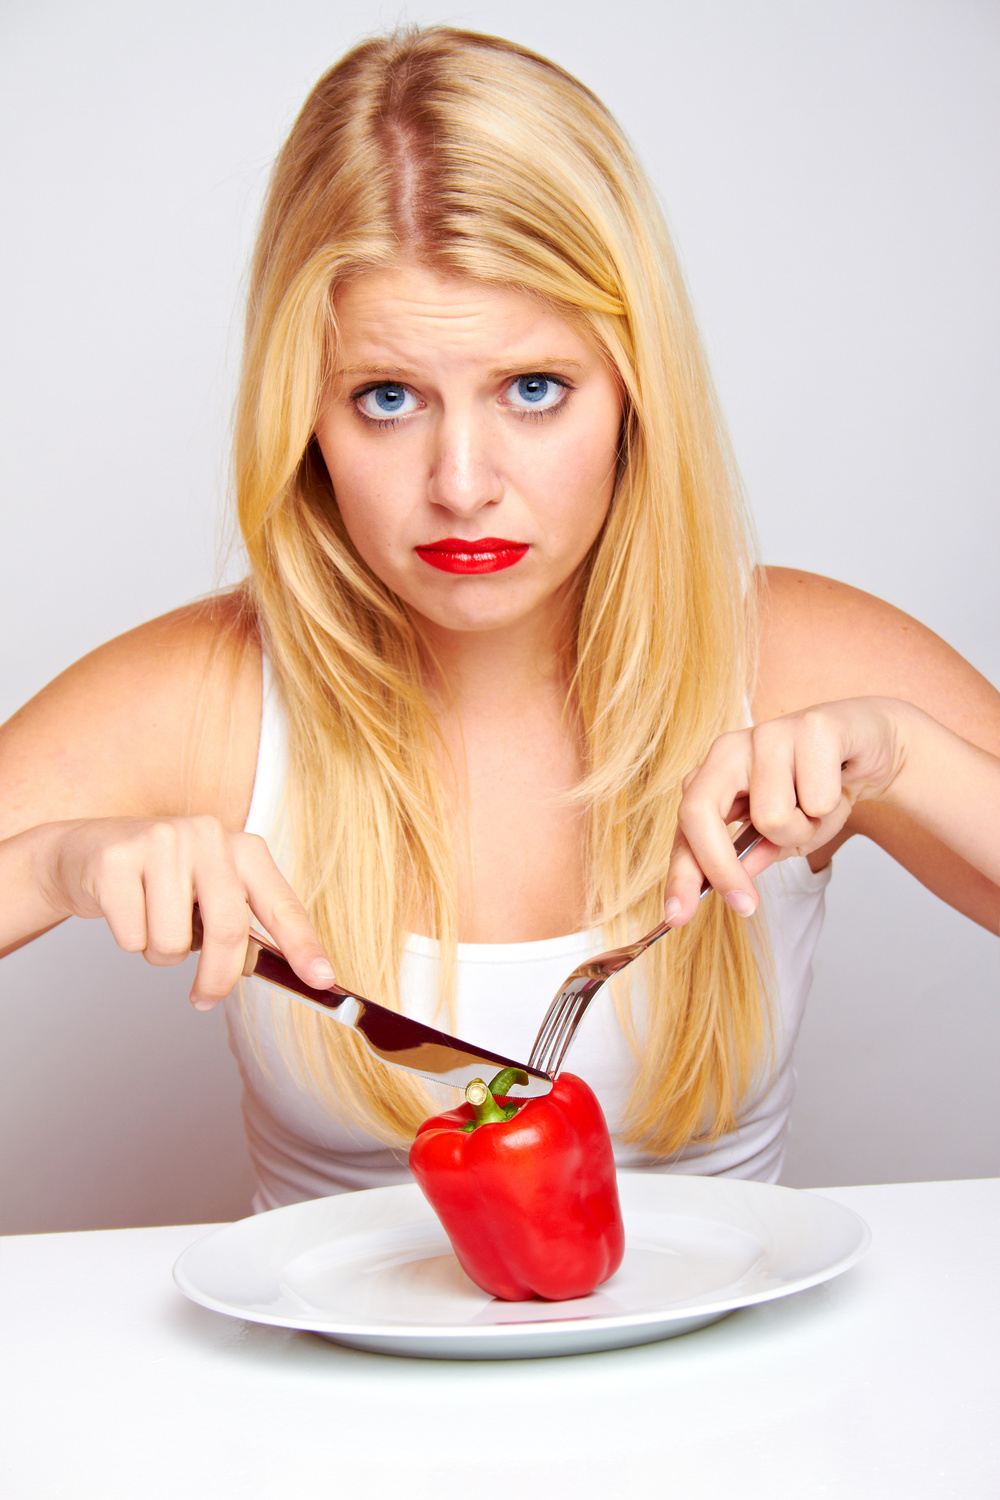 healthy food - young blond girl